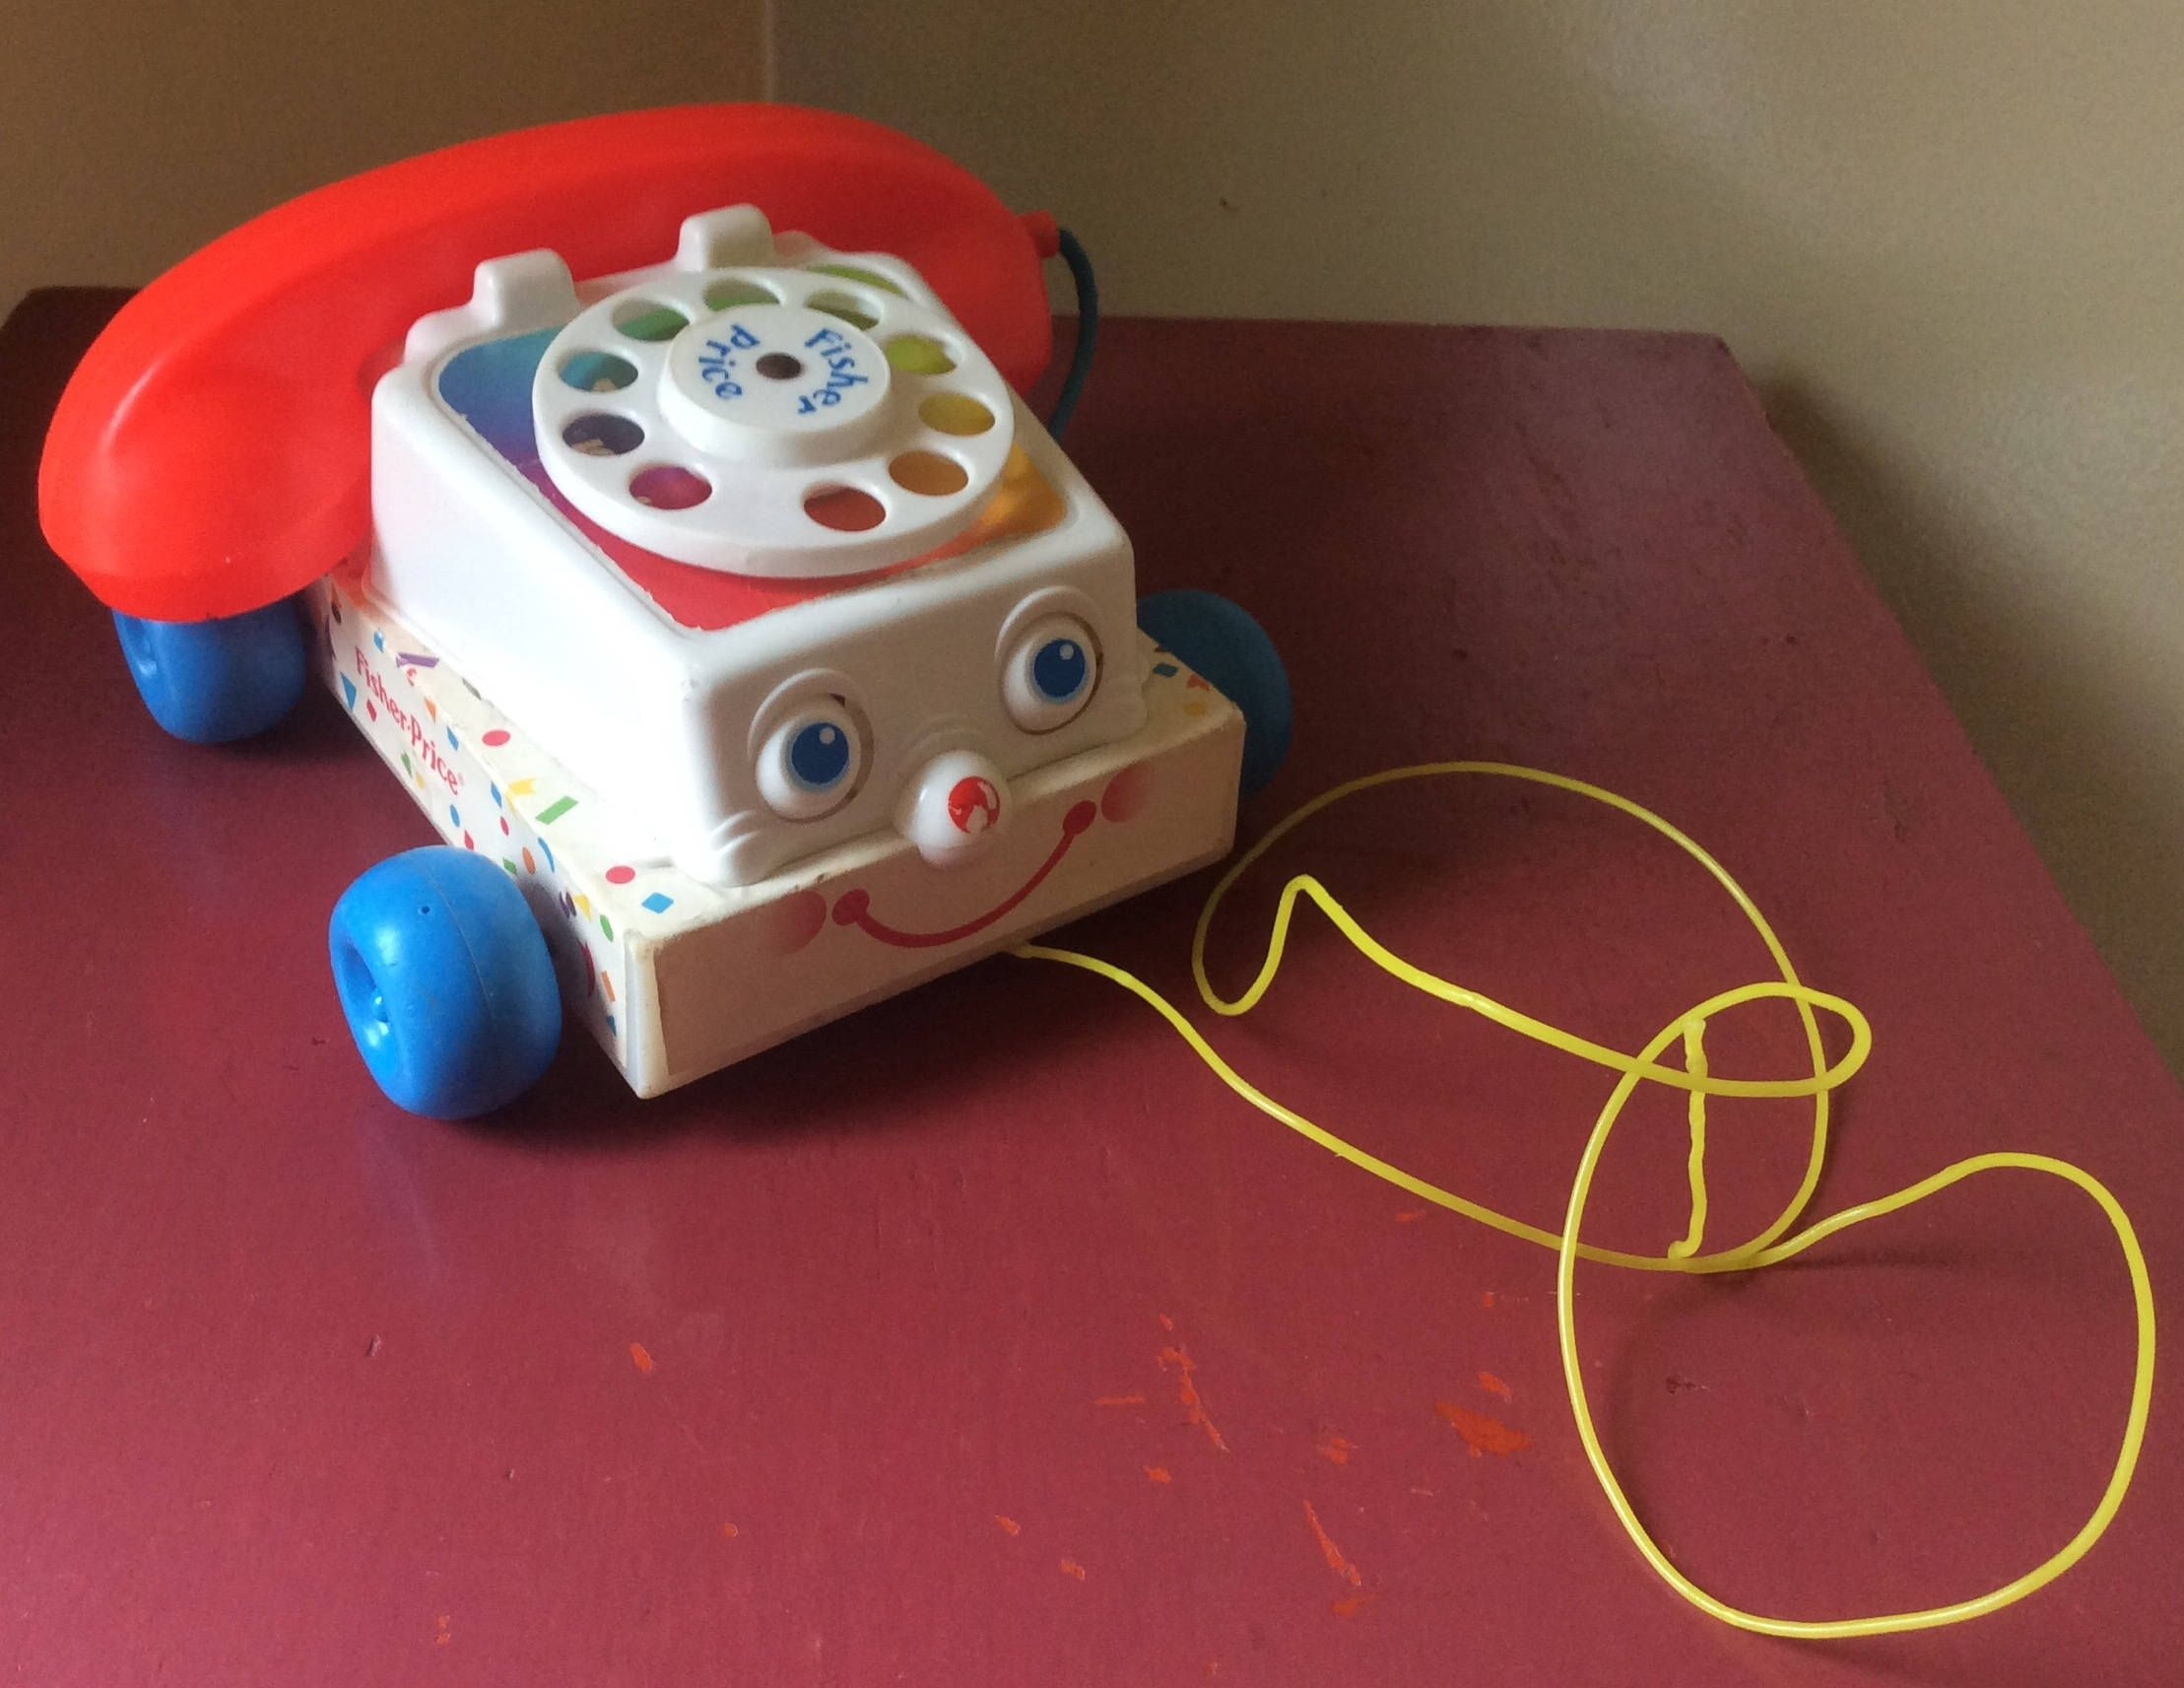 small resolution of vintage authentic novelty fisher price retro rotary phone toy 1980s 1970s 1960s for children nostalgia pull toy telephone toy by mandemsclevercache on etsy